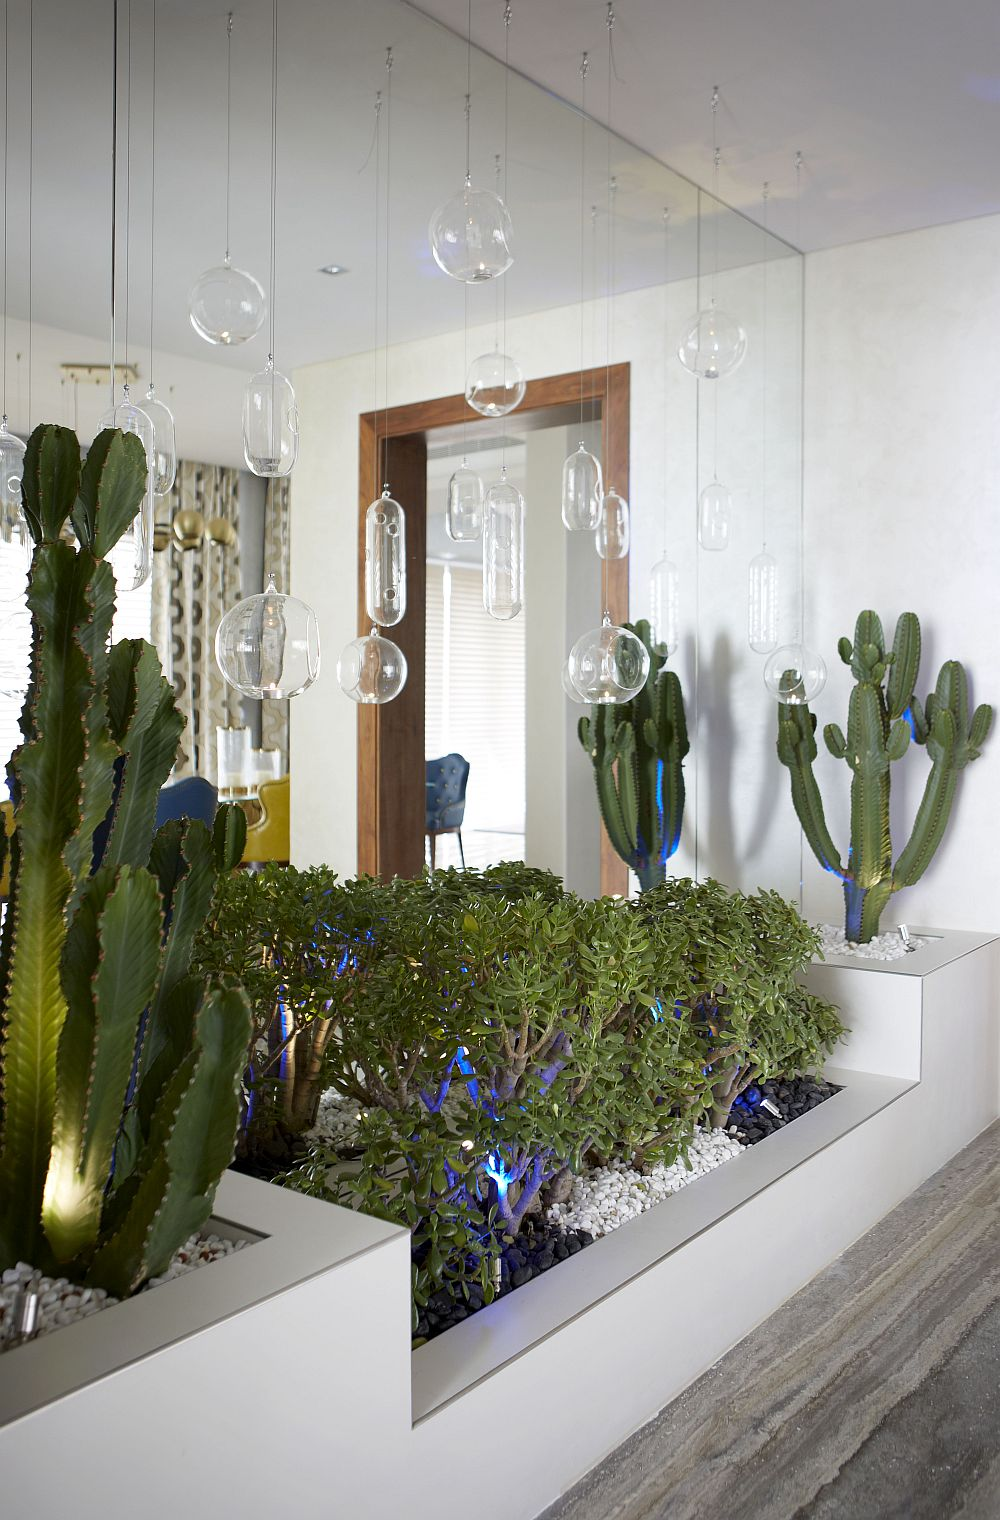 Hangining terrariums and an indoor garden inside the luxurious villa